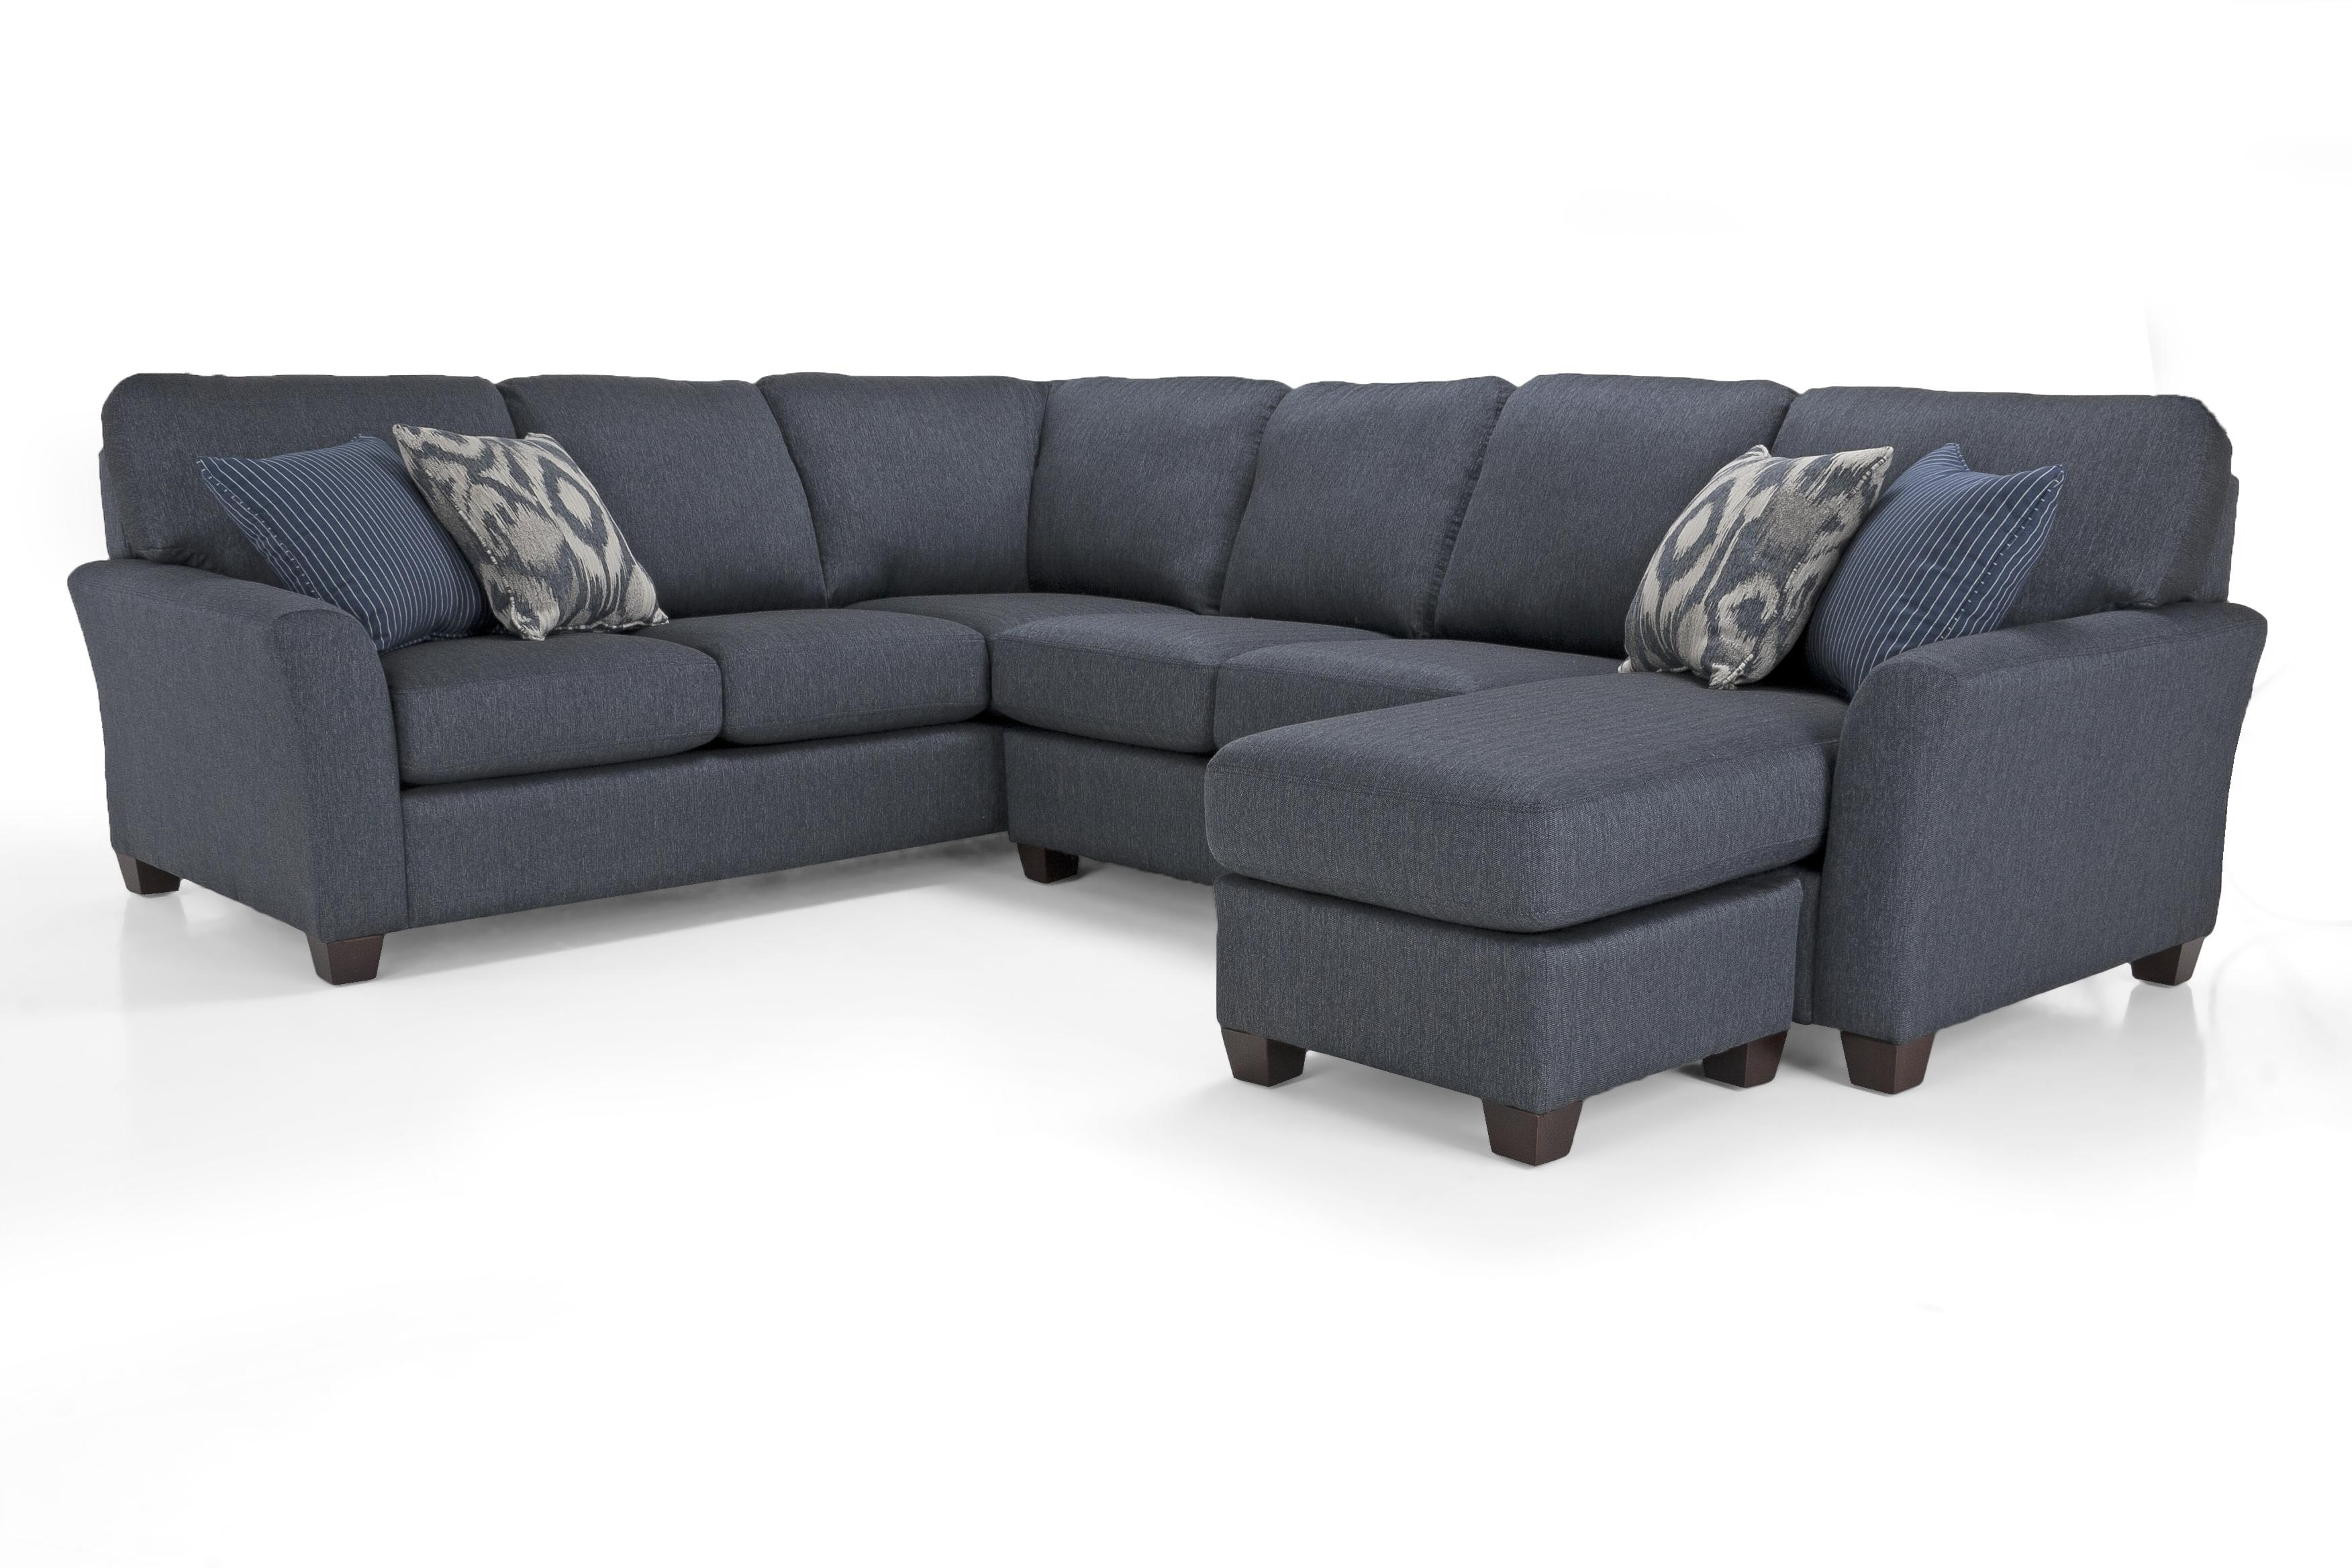 Alessandra Connections LHF Chaise Sectional by Decor-Rest at Johnny Janosik